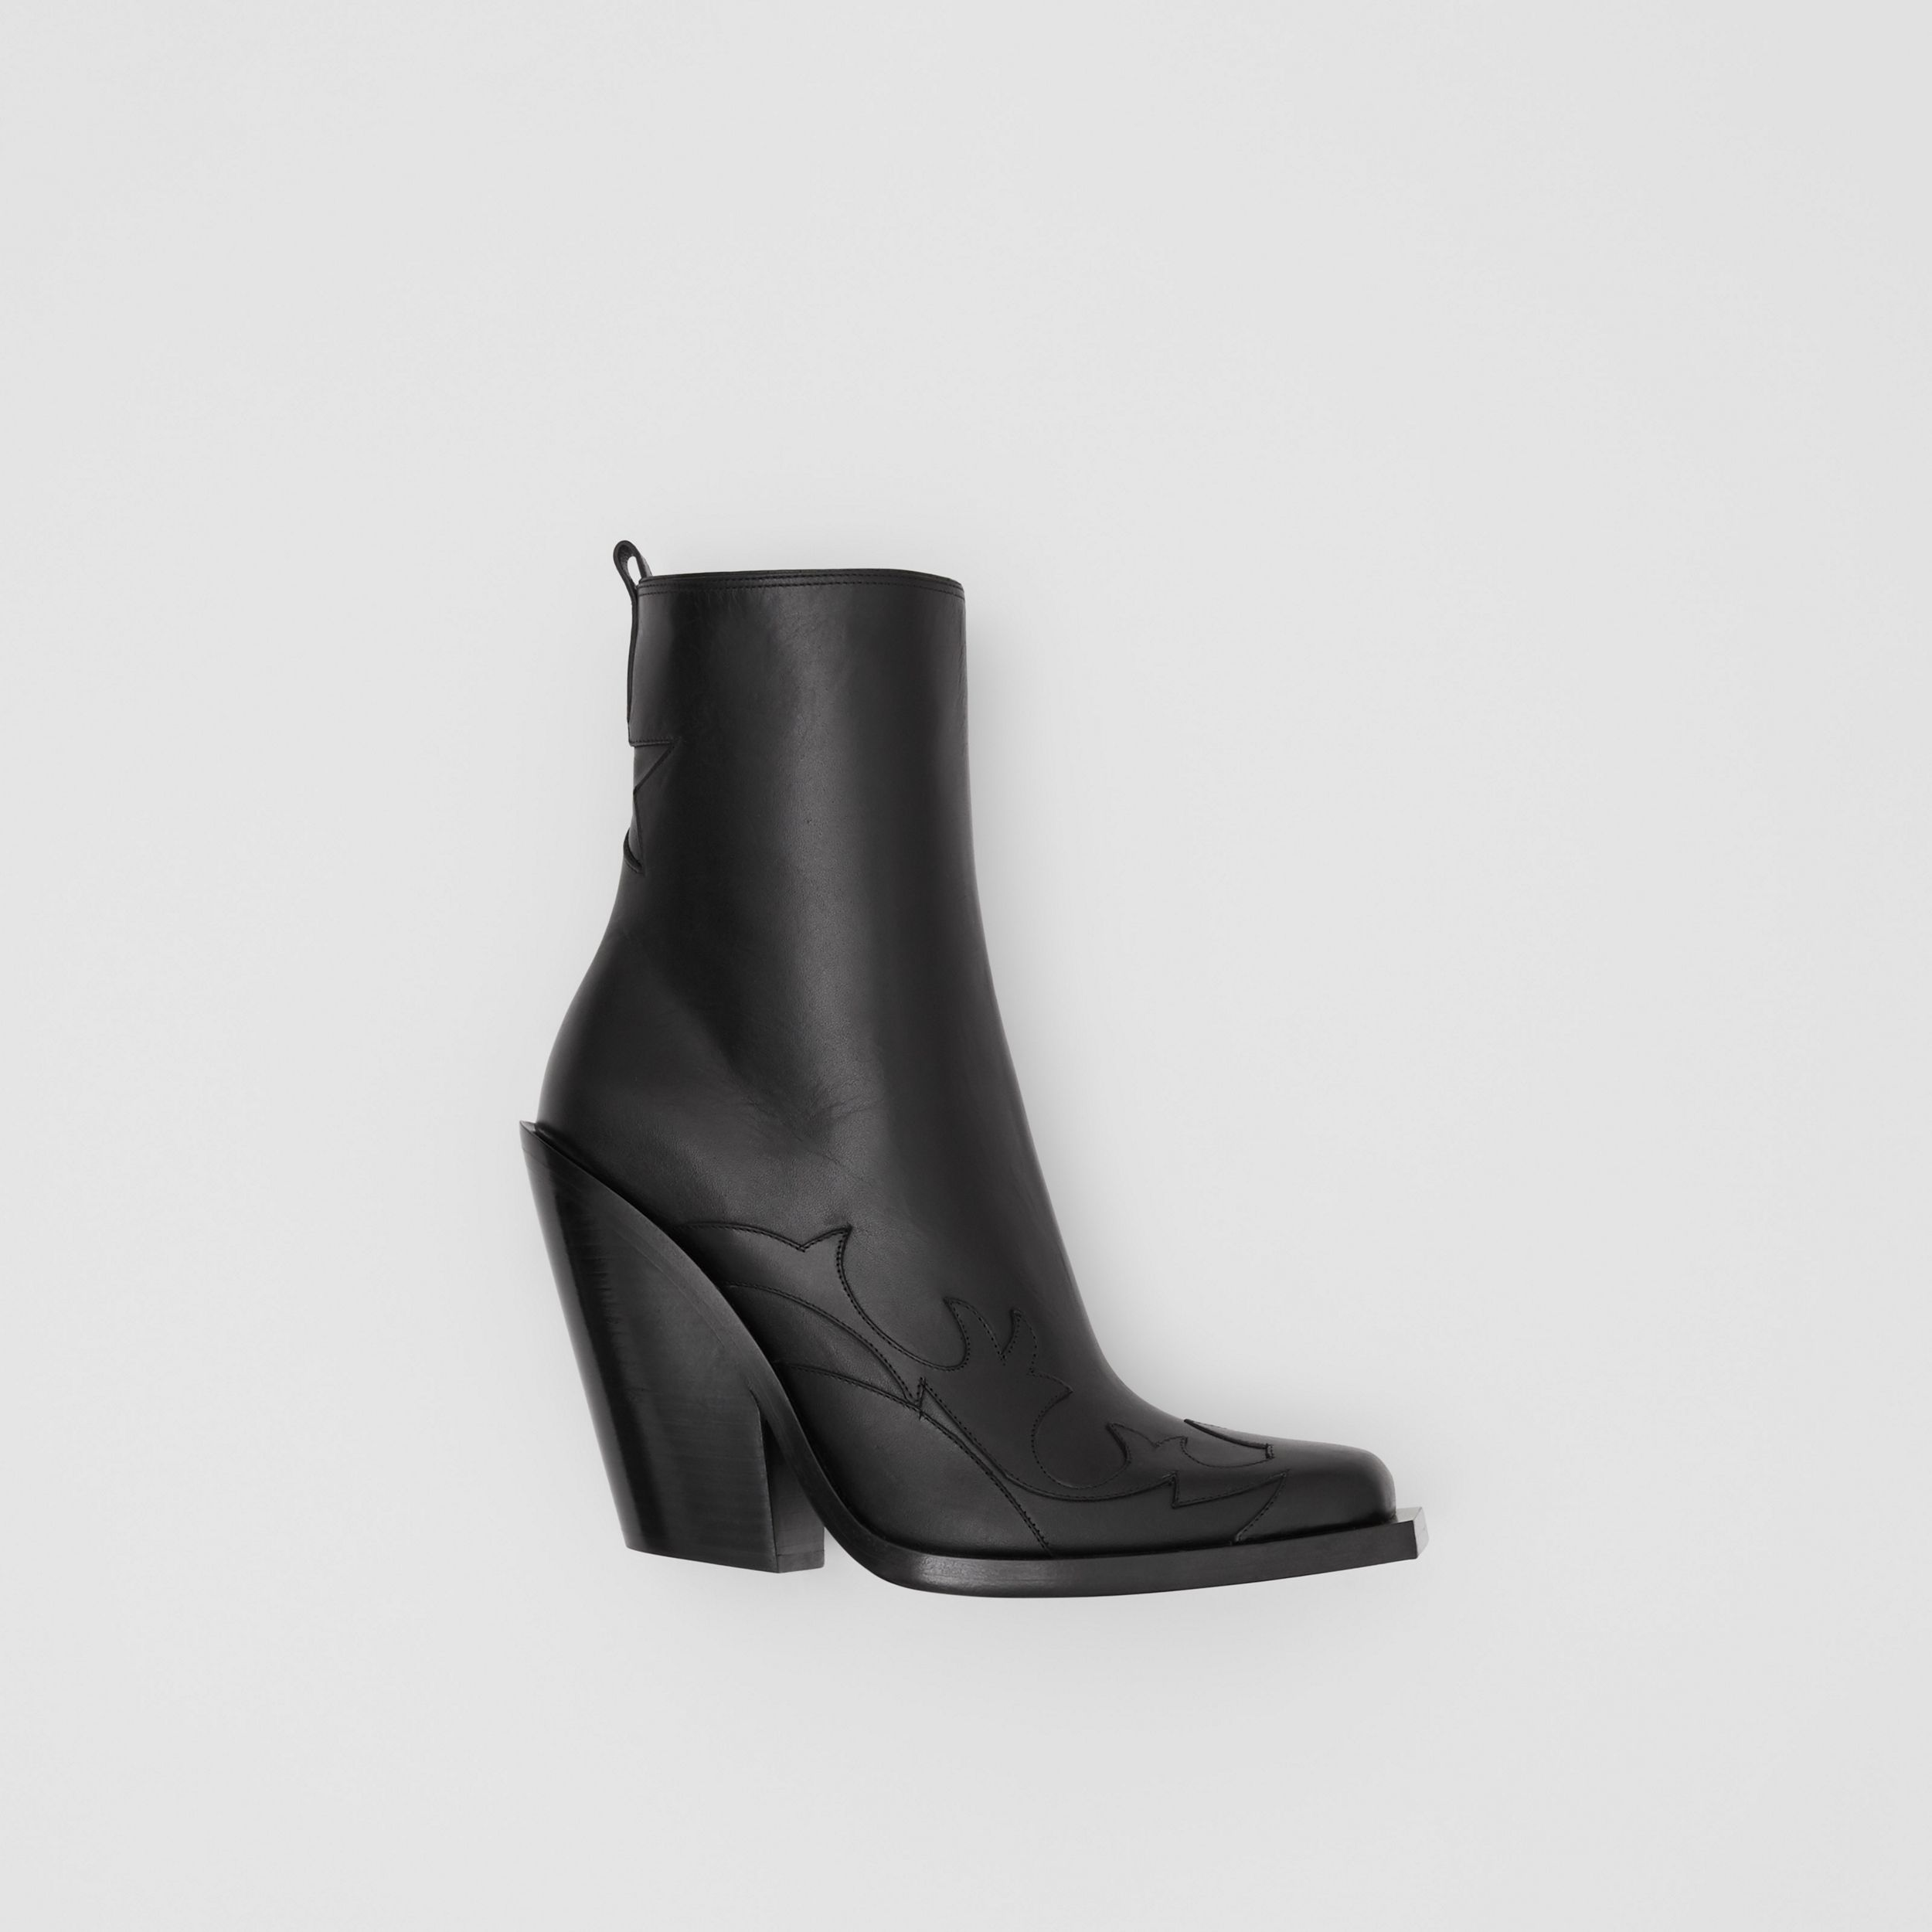 Star Detail Leather Block-heel Ankle Boots in Black - Women | Burberry Singapore - 1